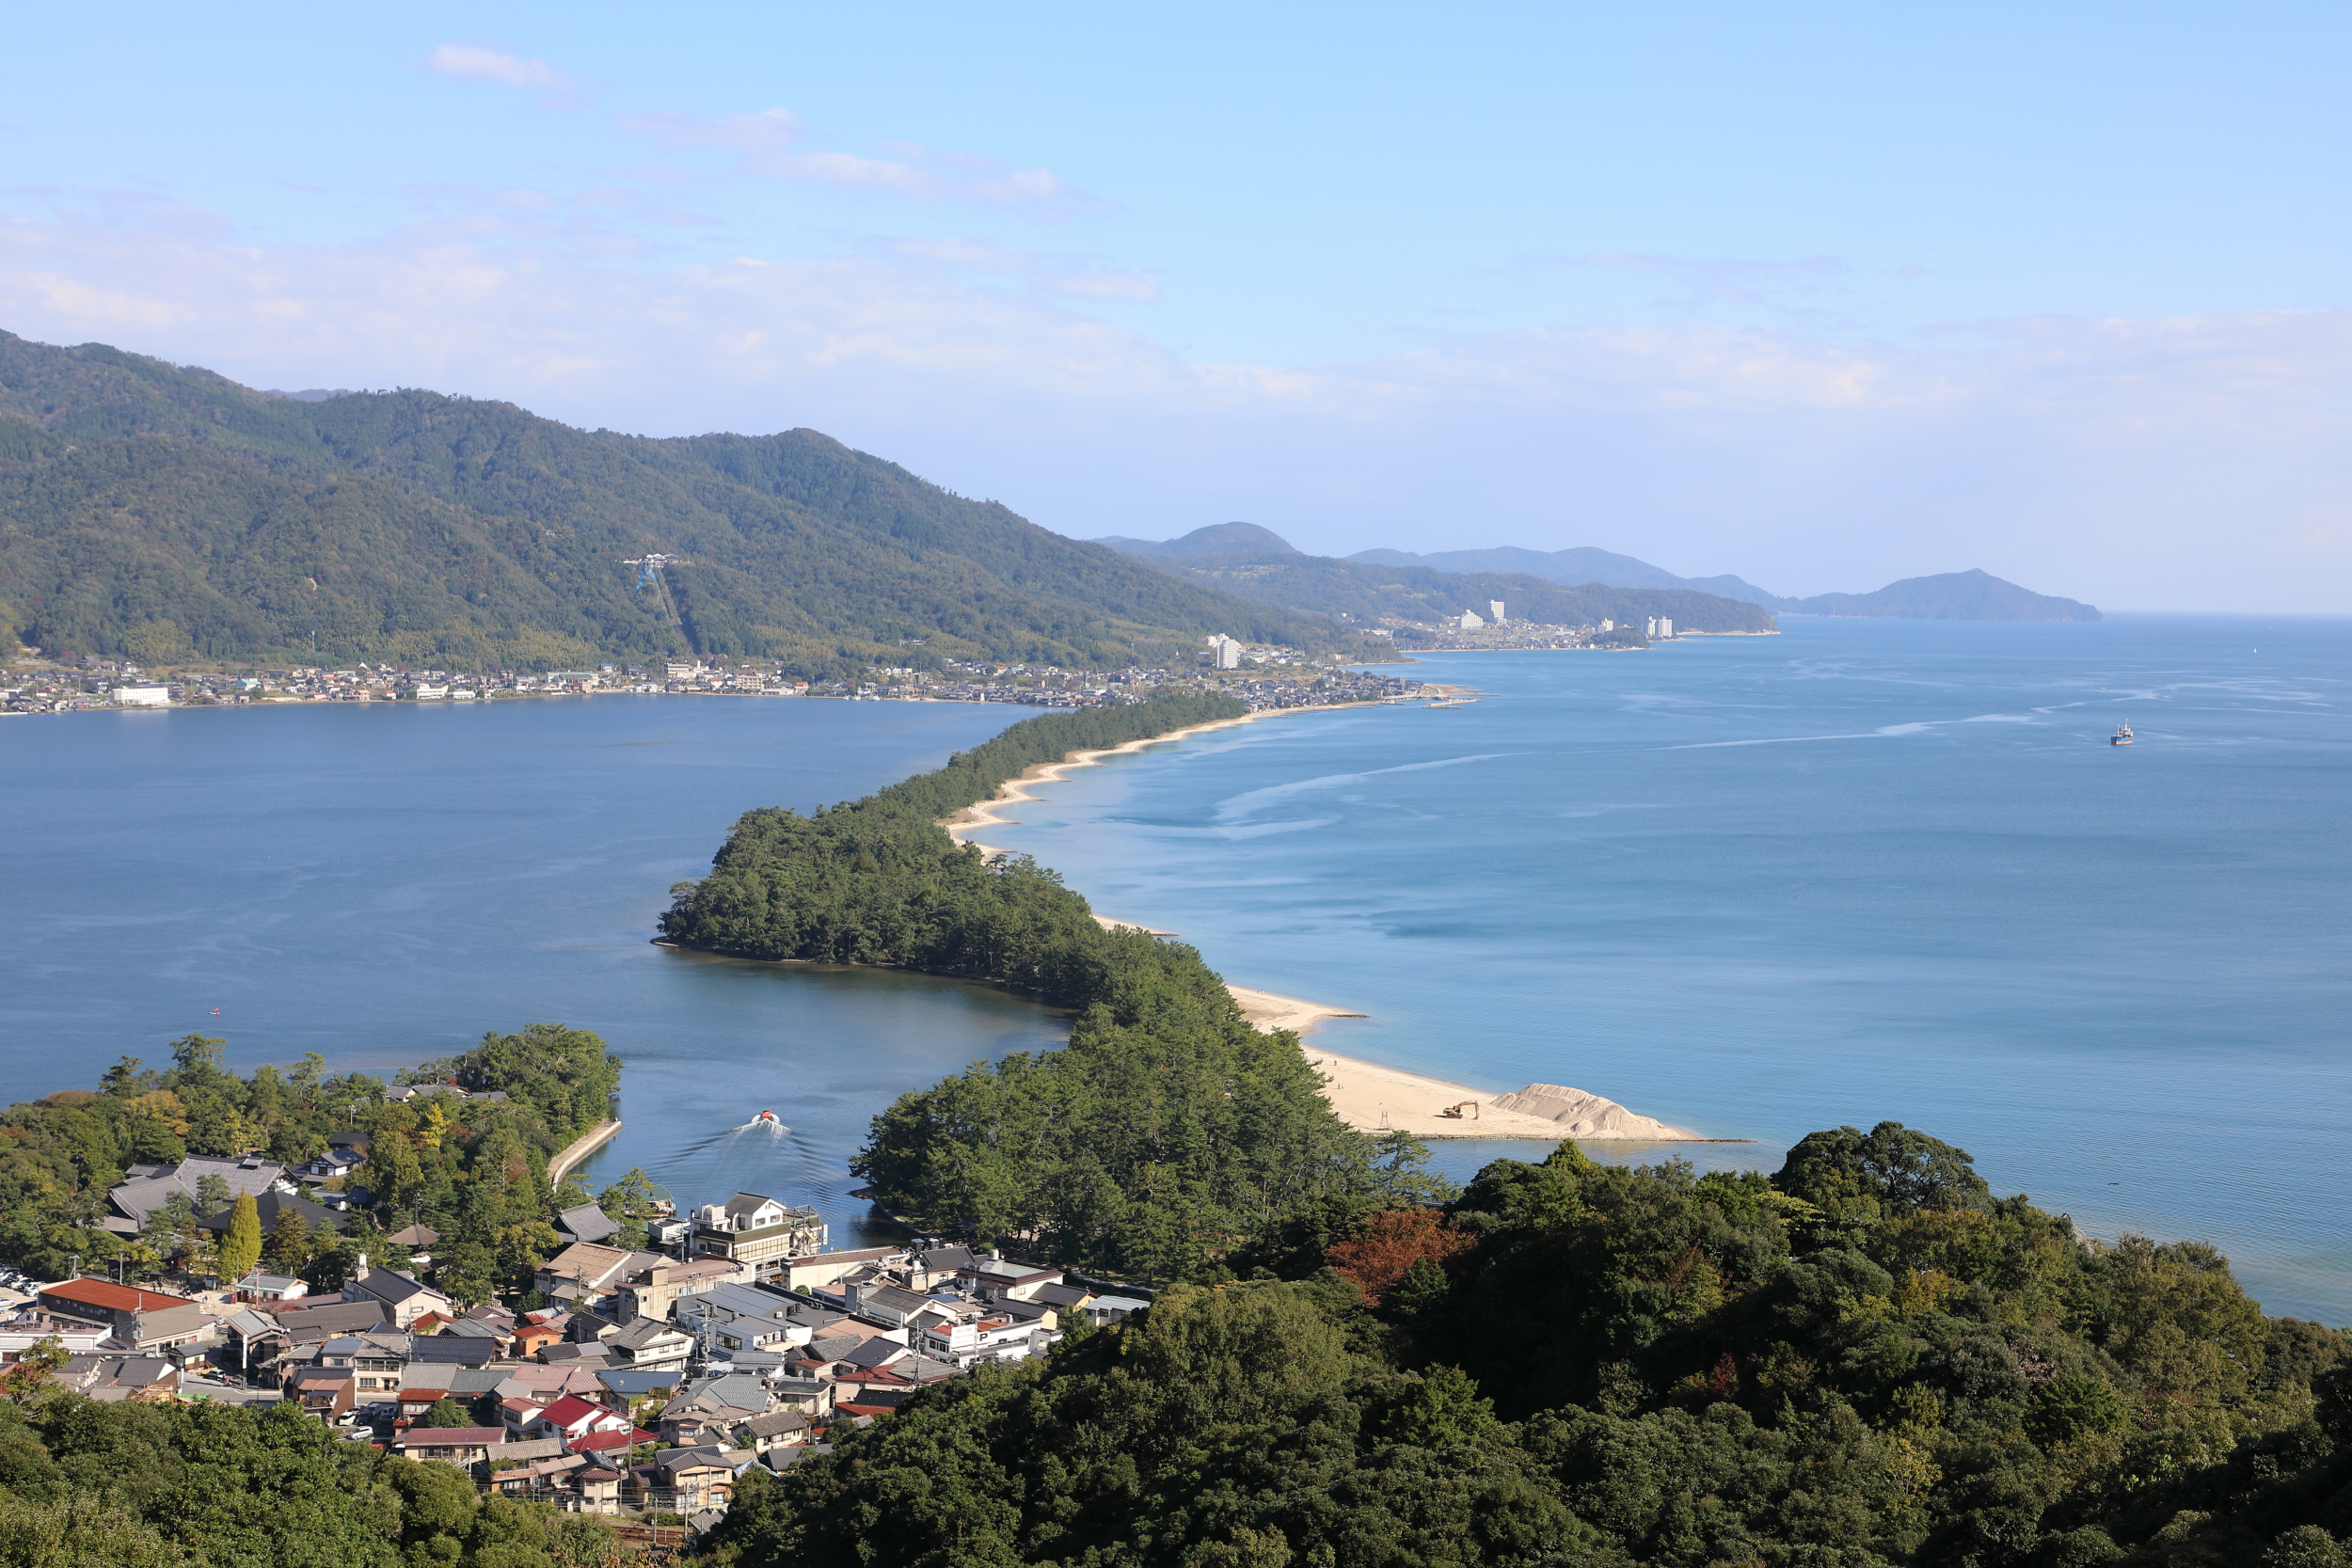 """The pine covered sandbar called """"Amanohashidate"""". The small temple district also called Amanohashidate is shown in the left foreground."""